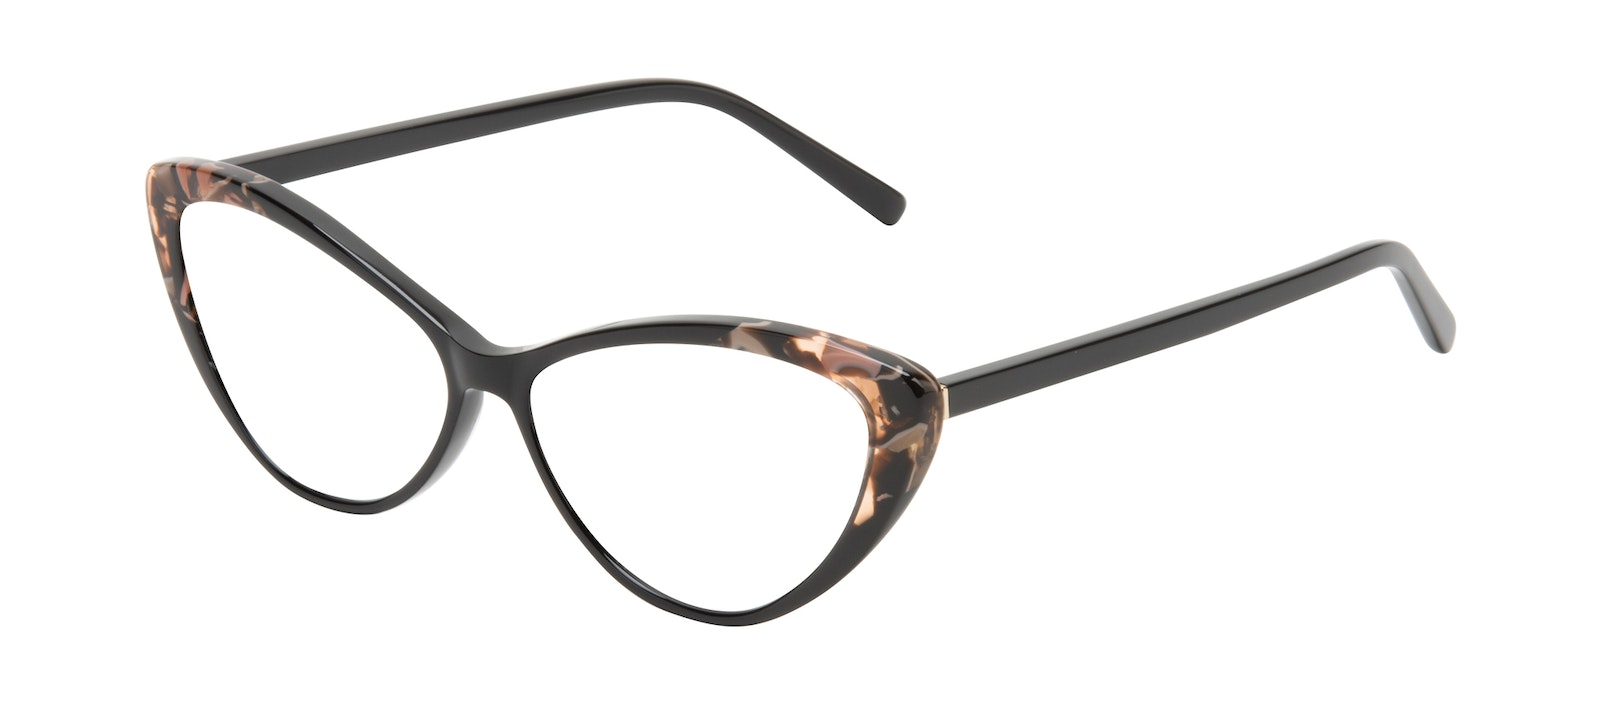 Affordable Fashion Glasses Cat Eye Eyeglasses Women Gossamer Midnight Pink Tilt